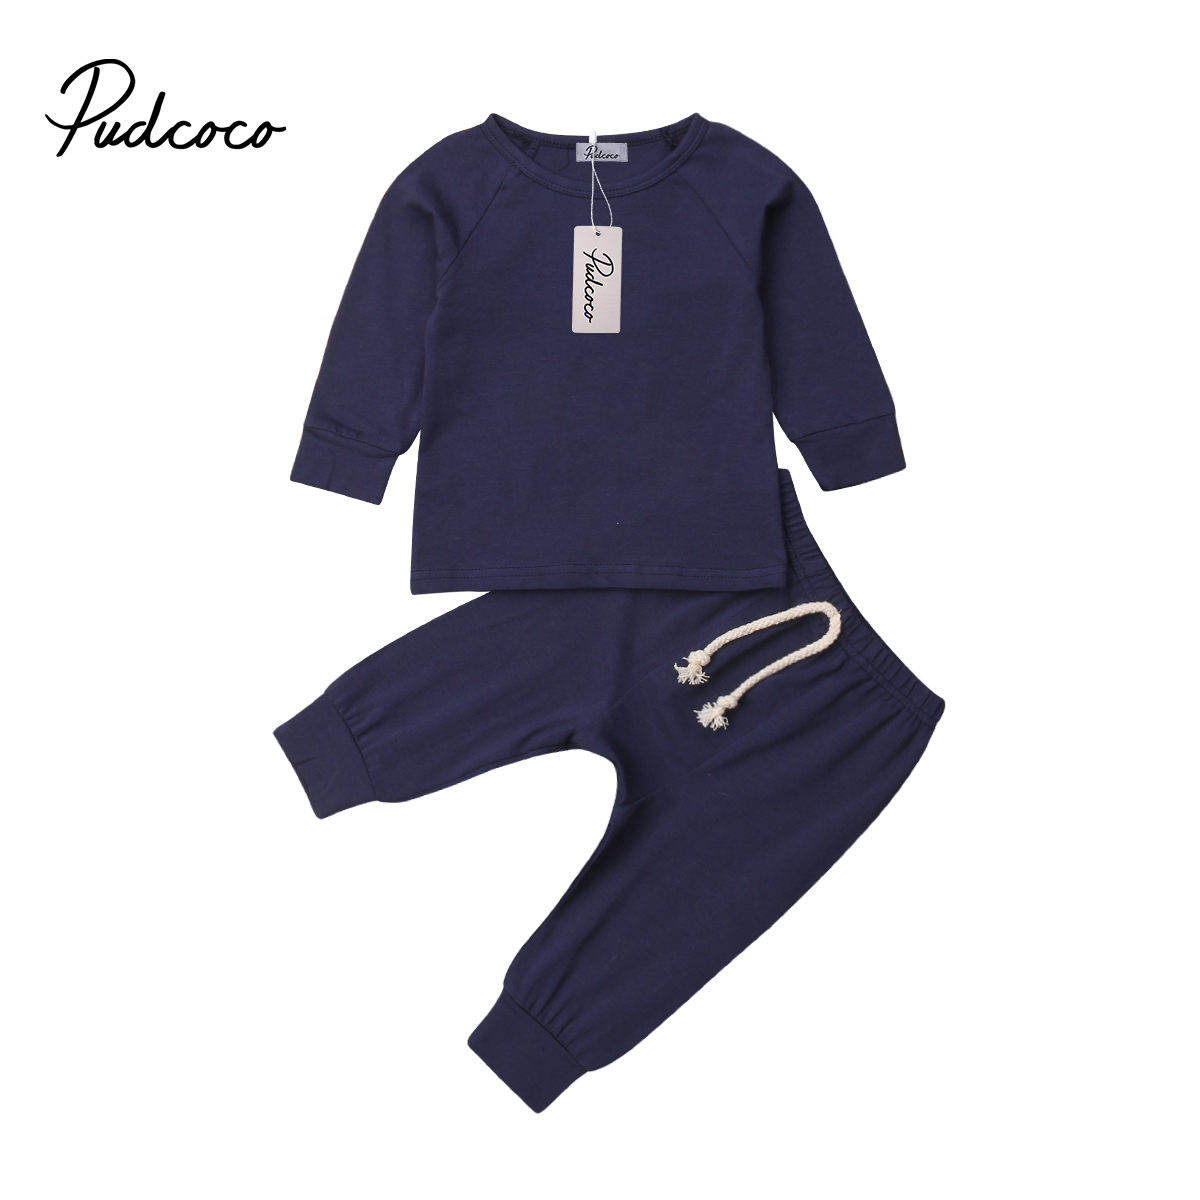 0-2Y Toddler Newborn Infant <font><b>Baby</b></font> Girls Boys <font><b>Clothing</b></font> Set Autumn Long Sleeve T-shirt+ Lace-up Pants Outfits <font><b>Unisex</b></font> <font><b>Baby</b></font> Costumes image